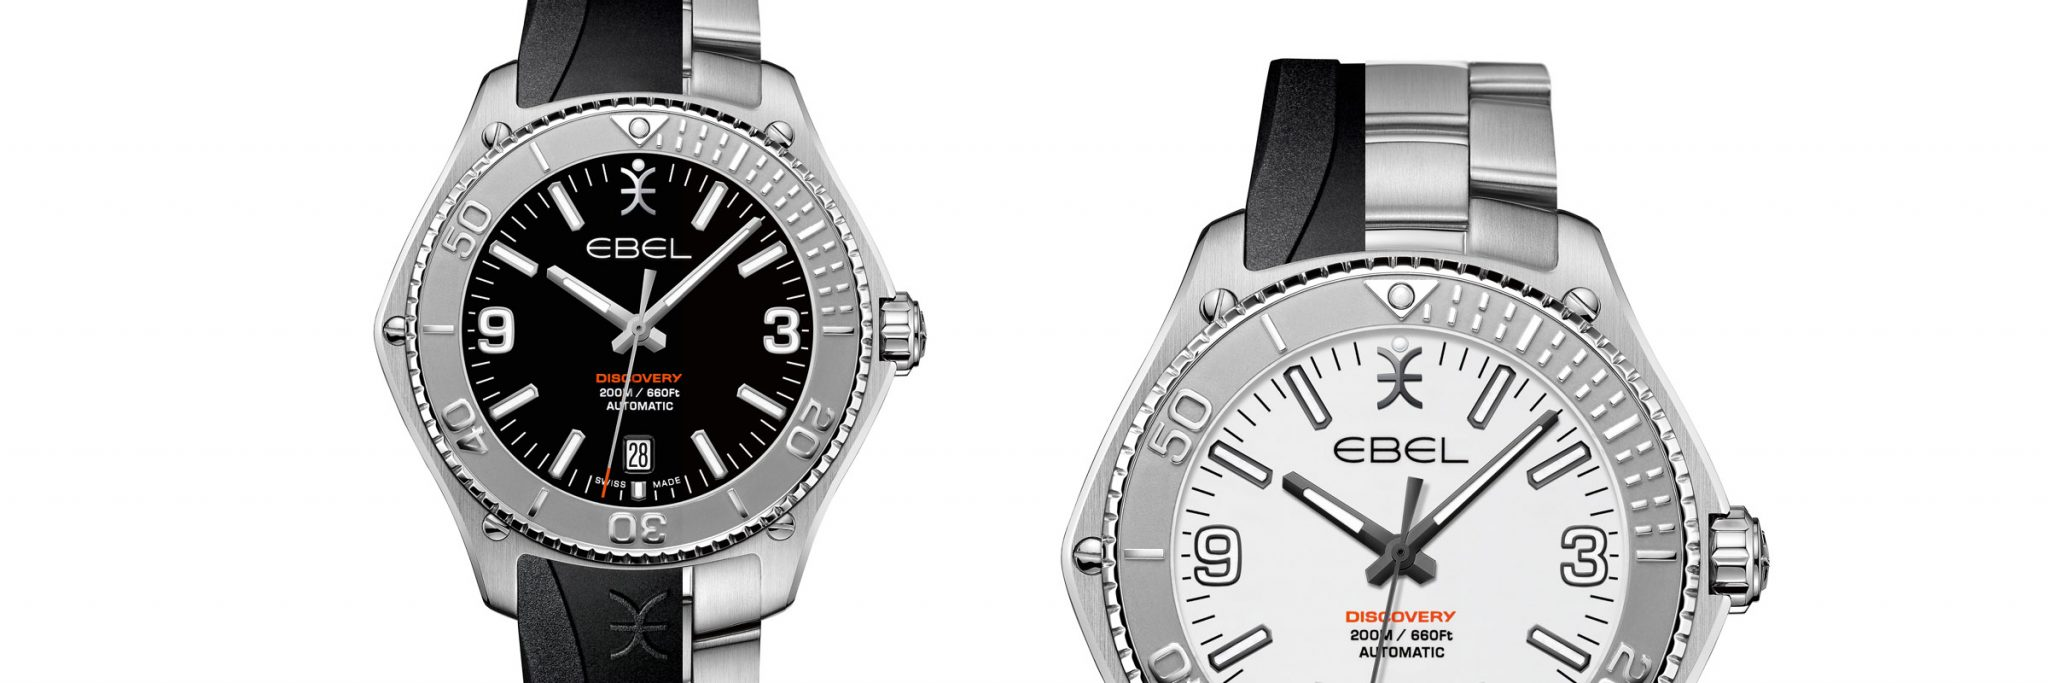 Ebel discovery gent 200